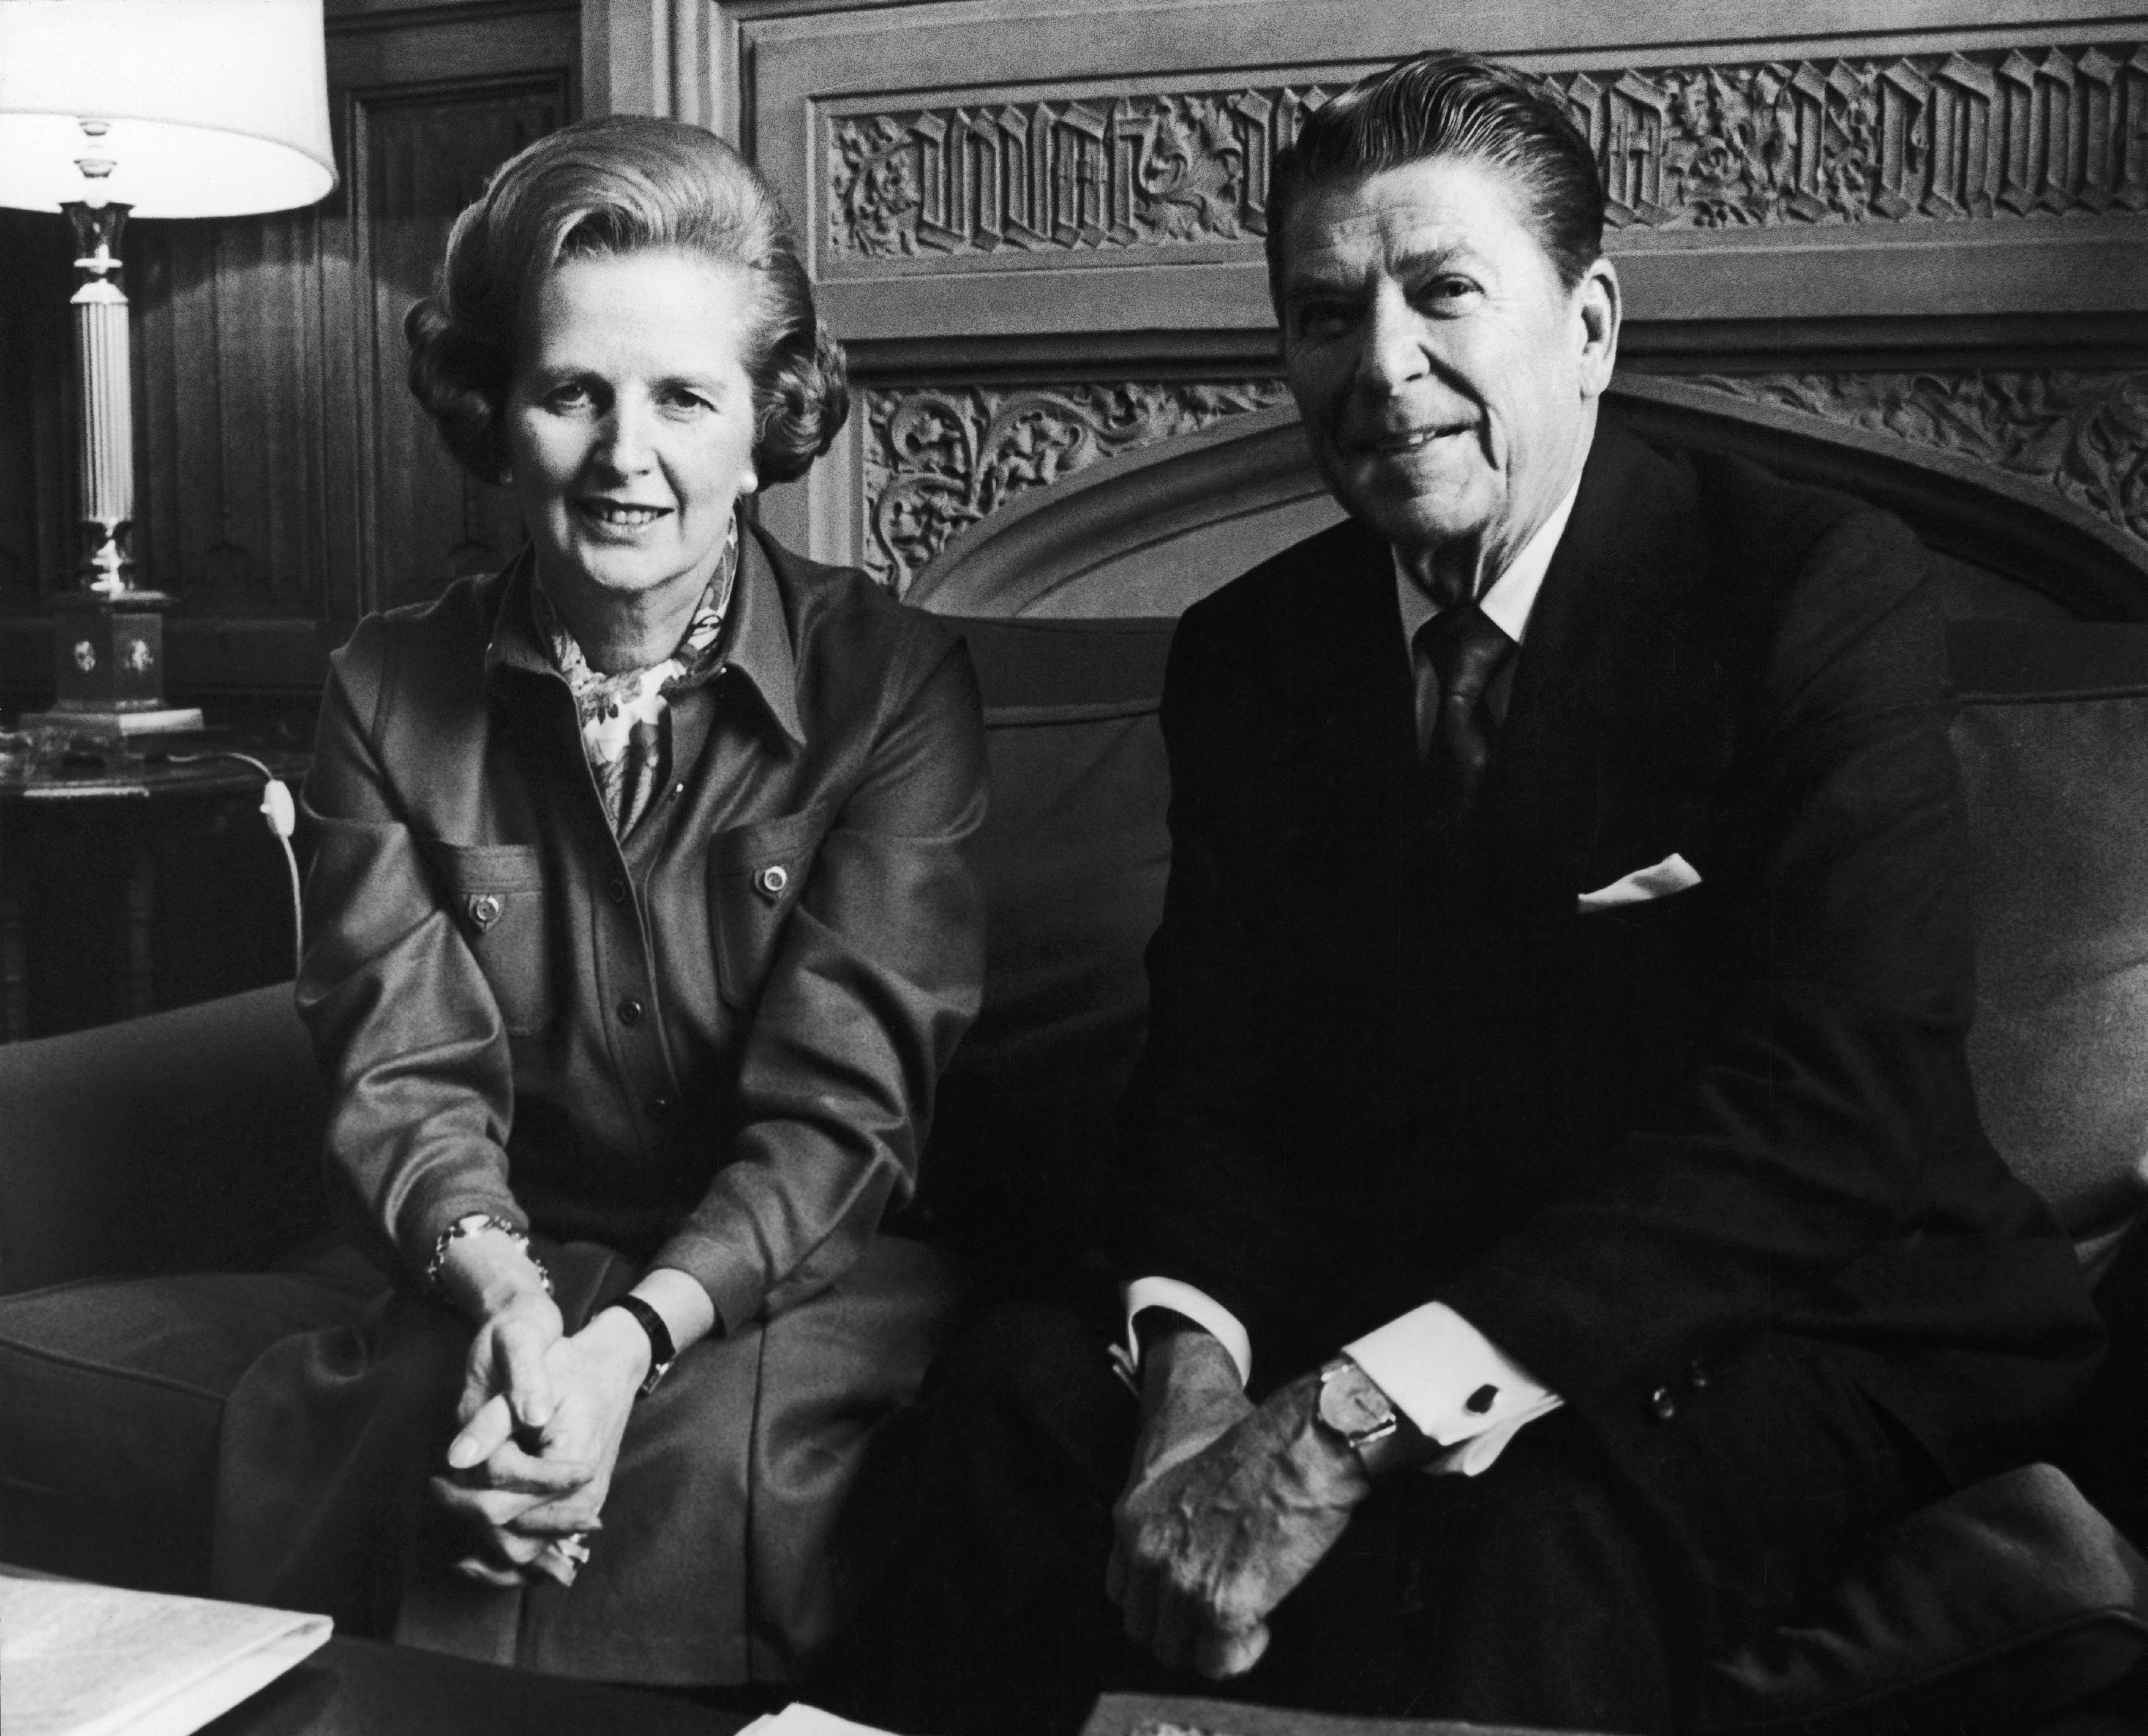 Margaret Thatcher the Head Of The British Conservative Party meets with President Ronald Reagan at The Chamber Of Communes In London on Nov. 28, 1978.